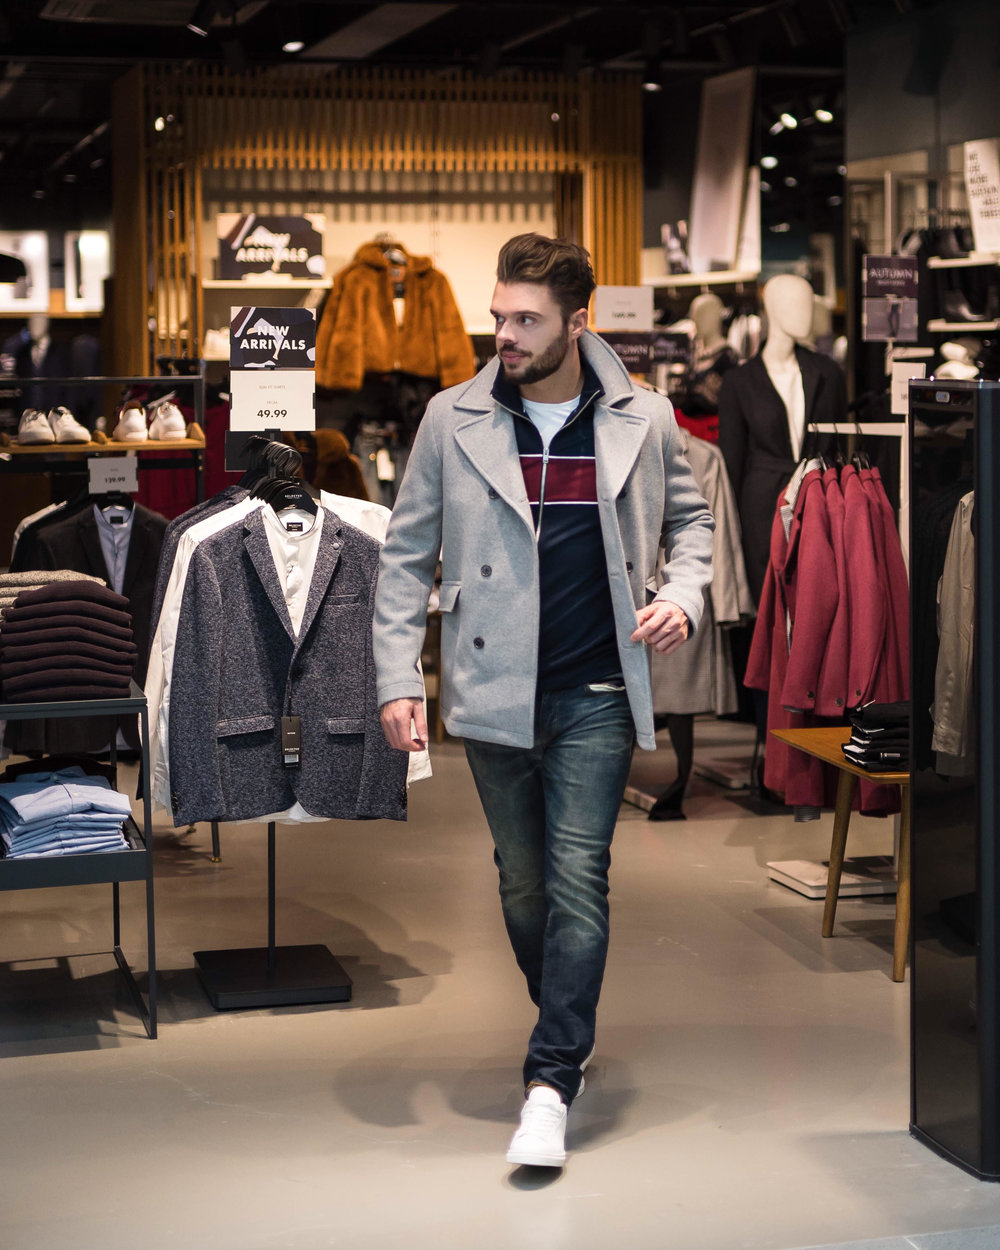 Full outfit from Selected Homme